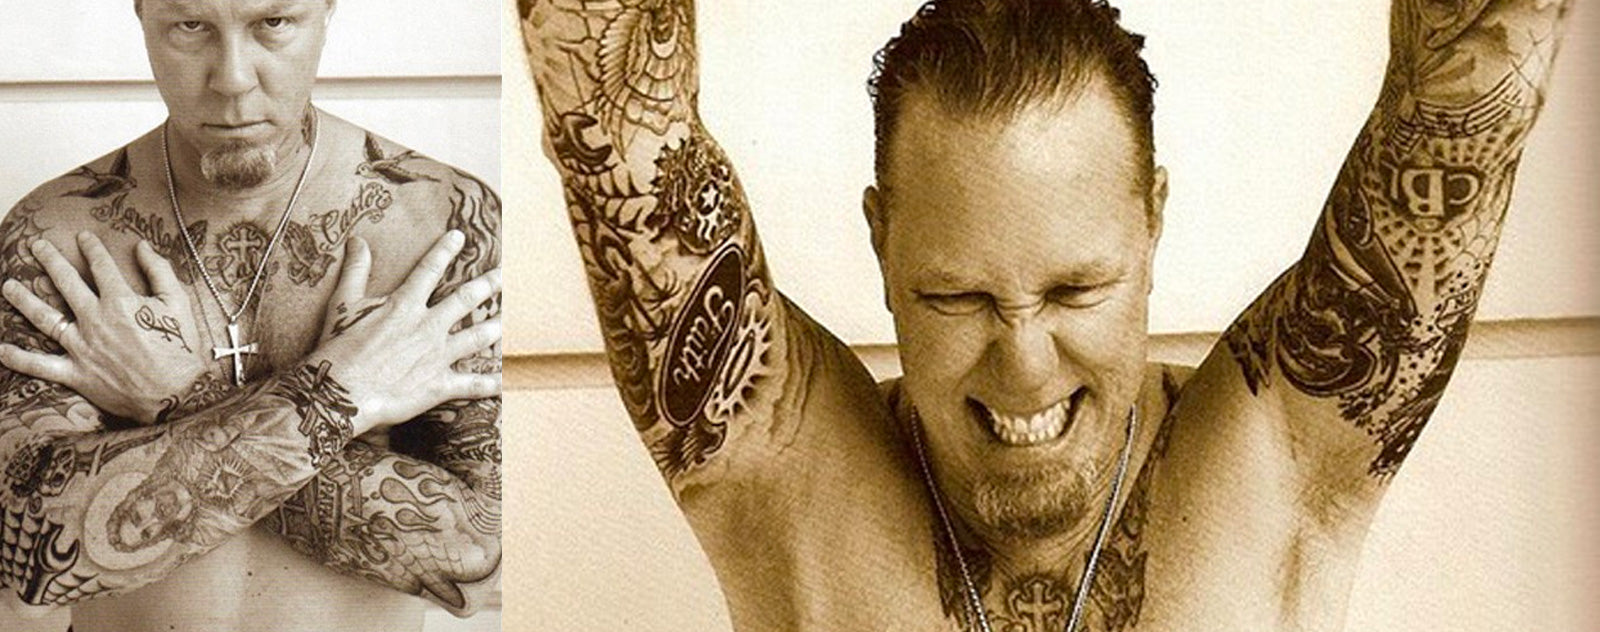 James Hetfield tatoos